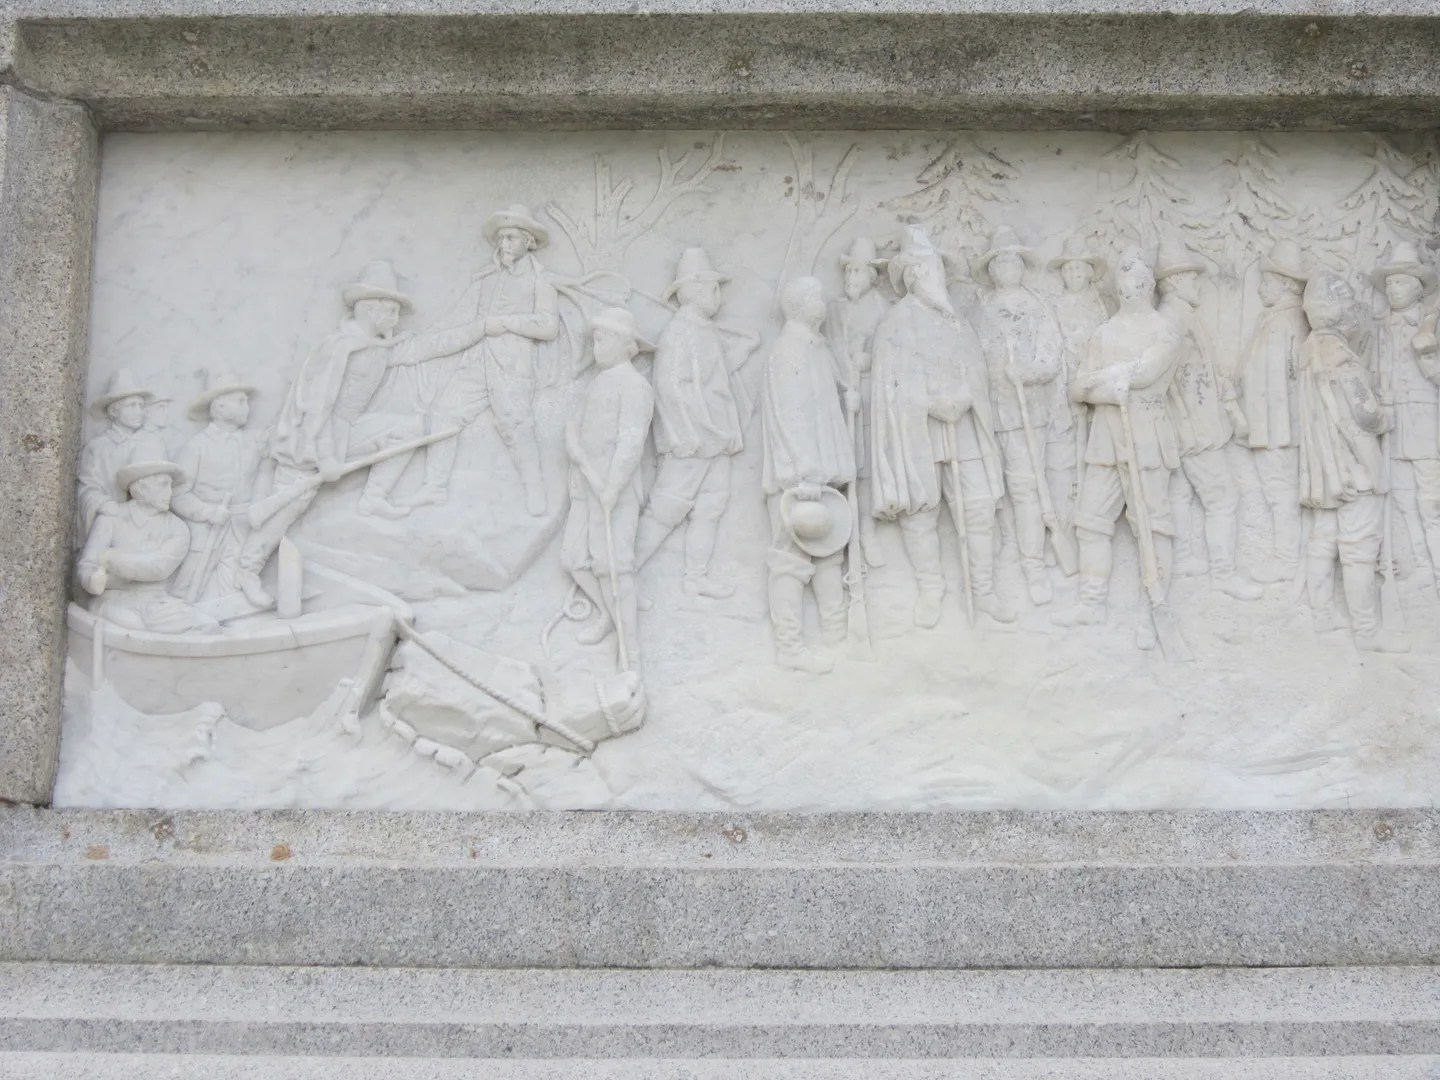 Pilgrim frieze,National Monument to the Forefathers, Plymouth, Massachusetts